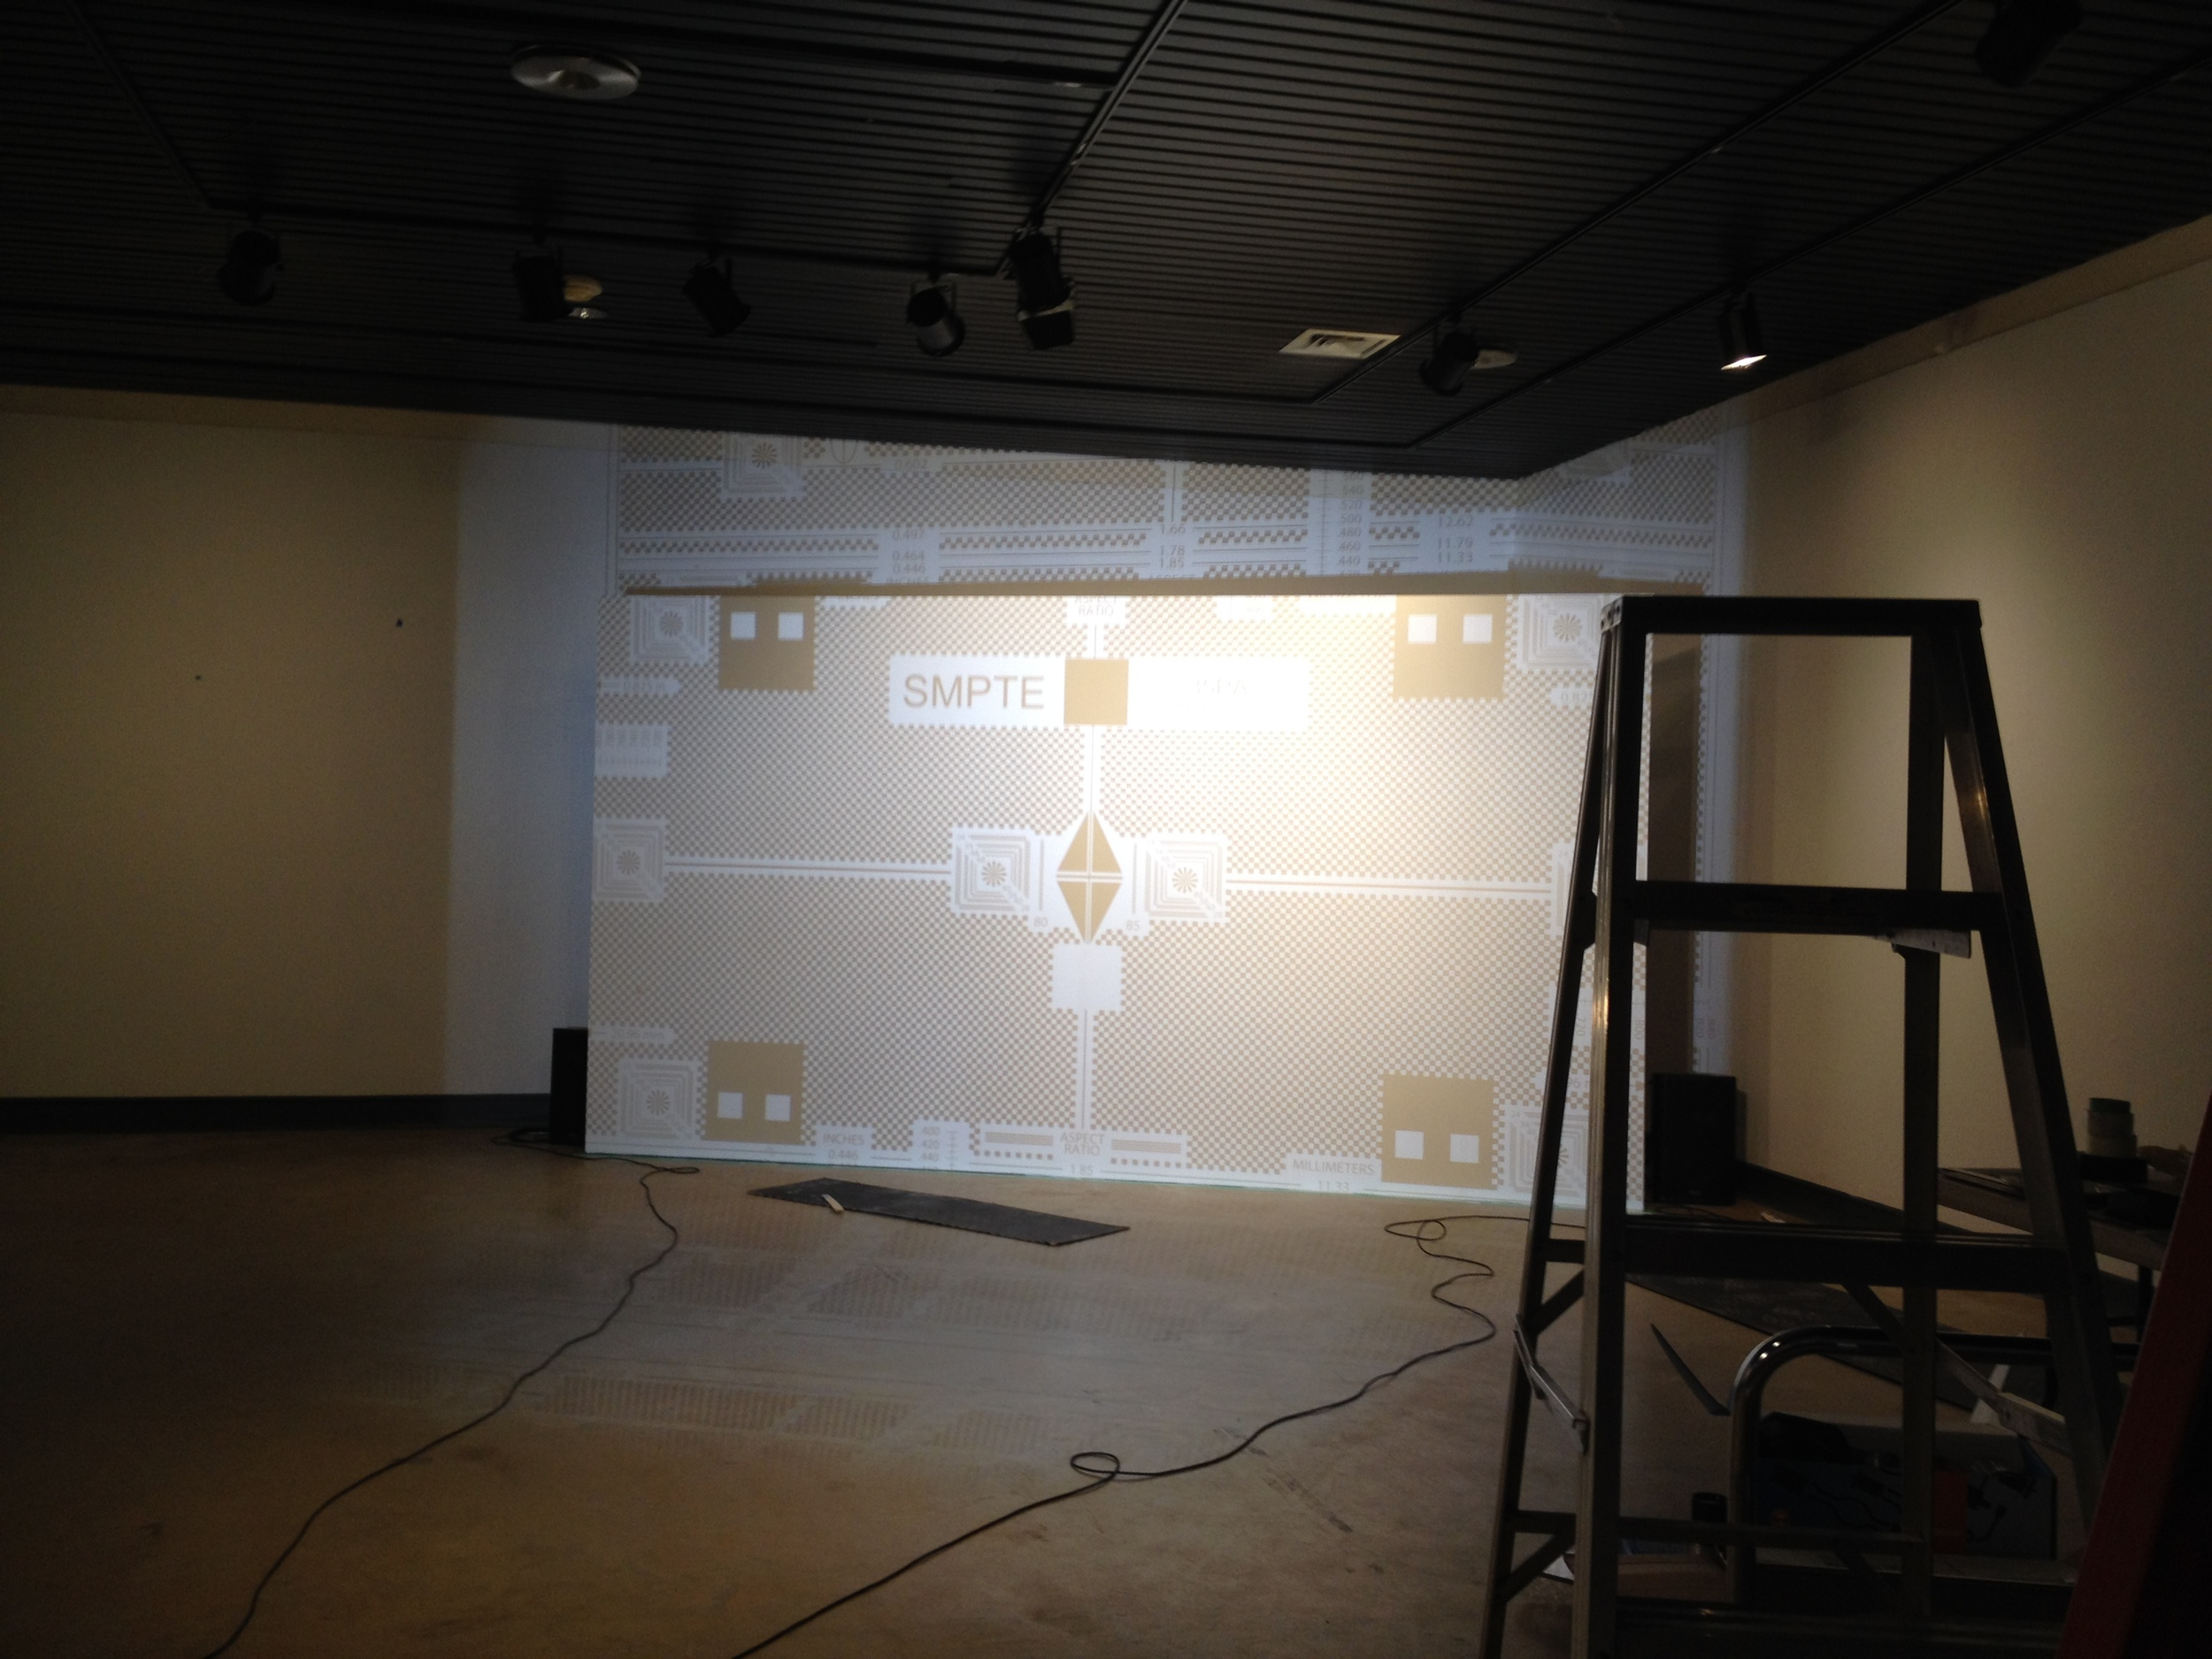 SMPTE film projected on the screen